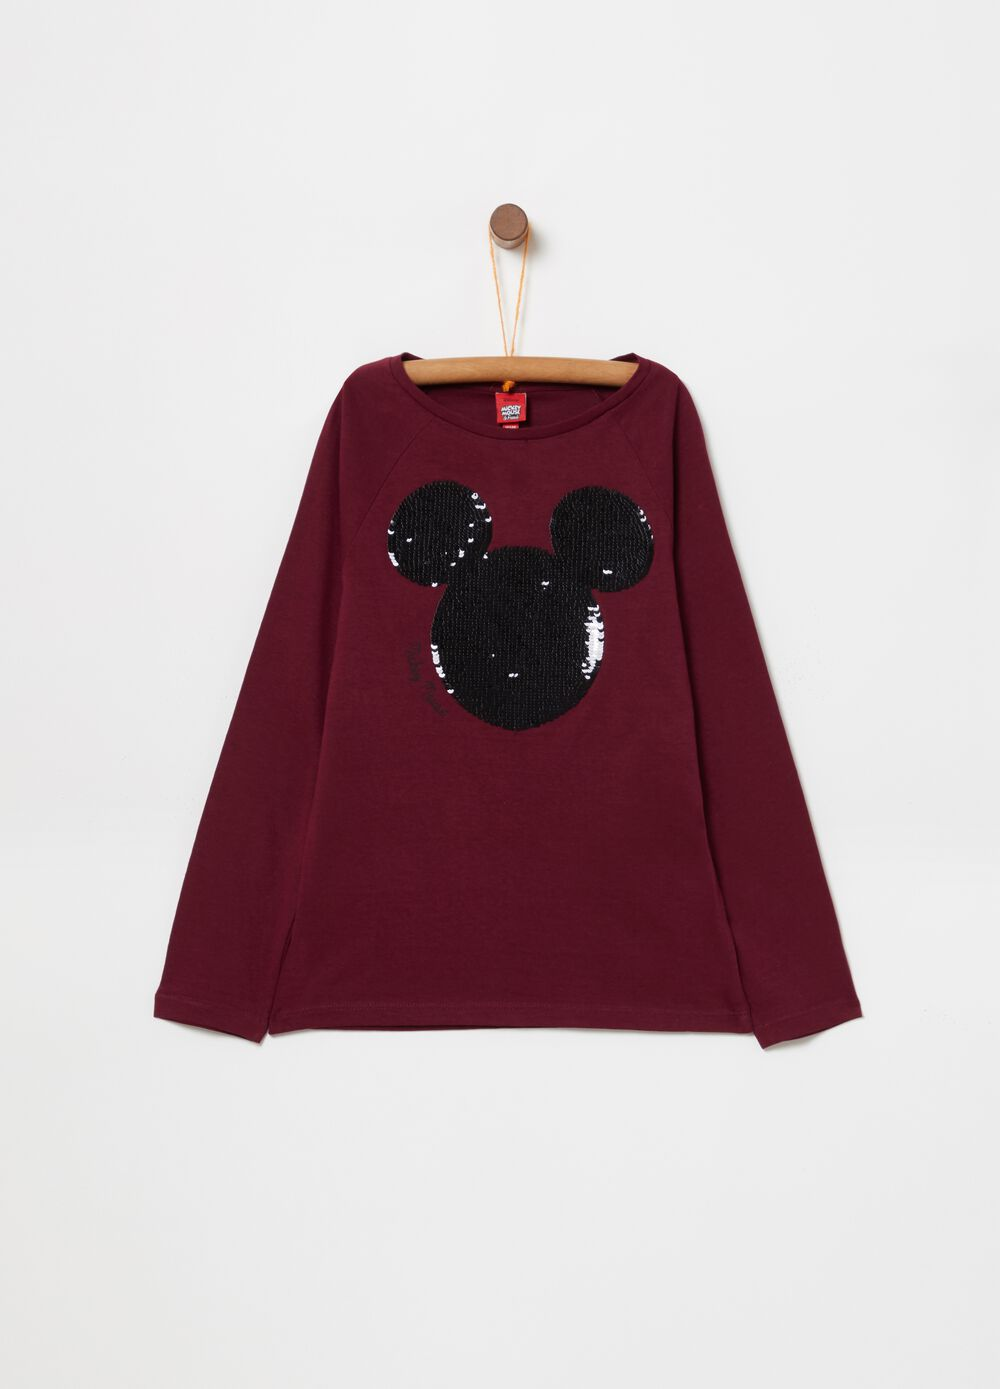 Cotton Disney Mickey Mouse T-shirt with sequins